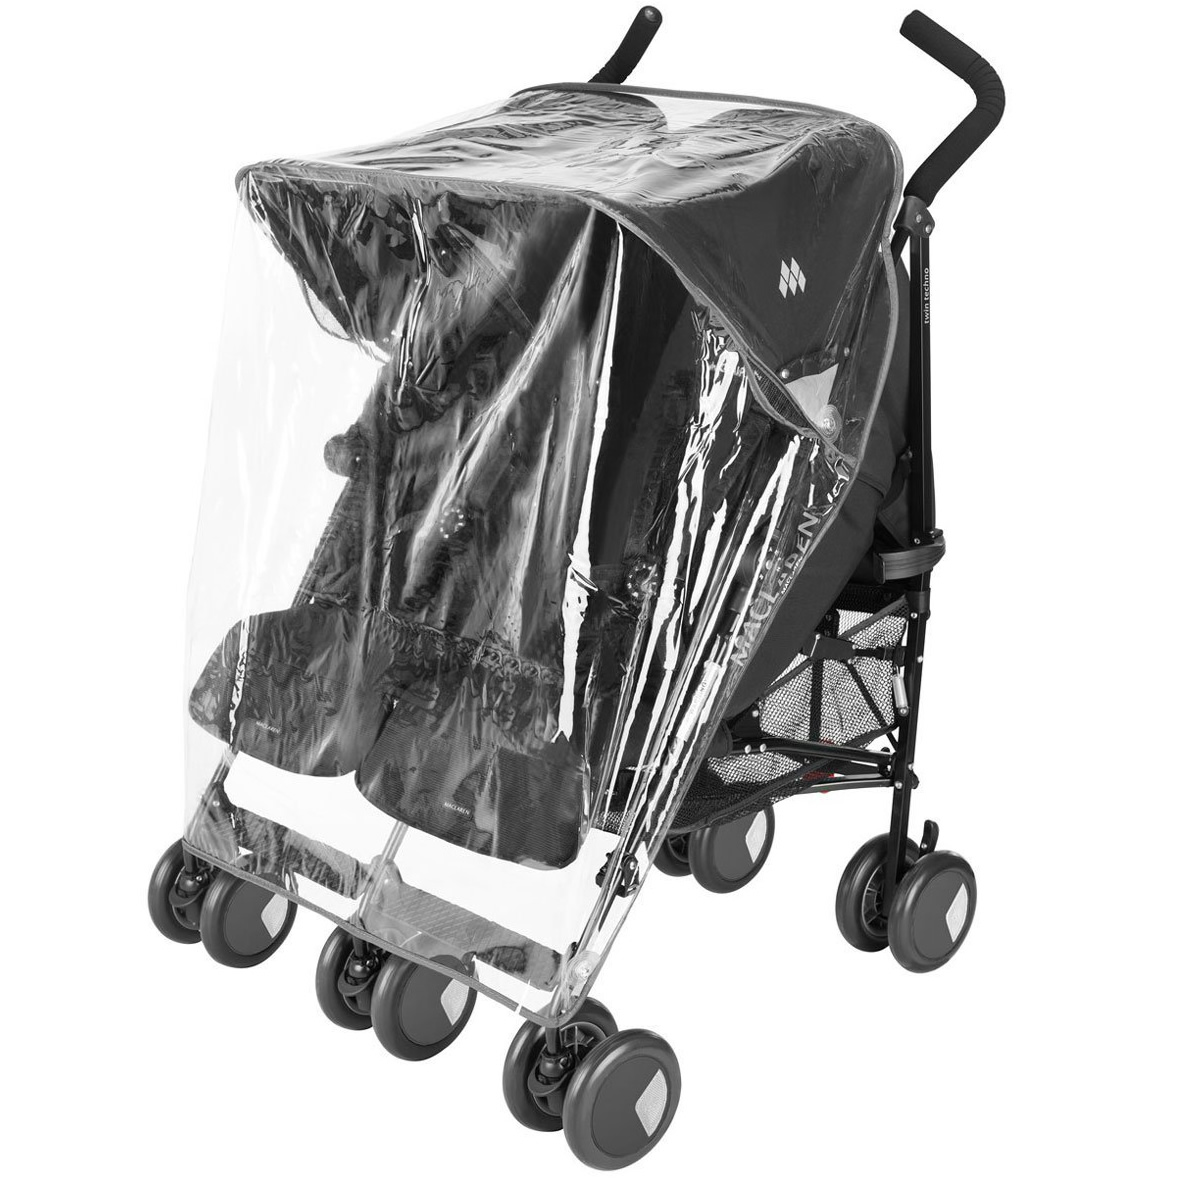 stroller double deals mother's day January 2018